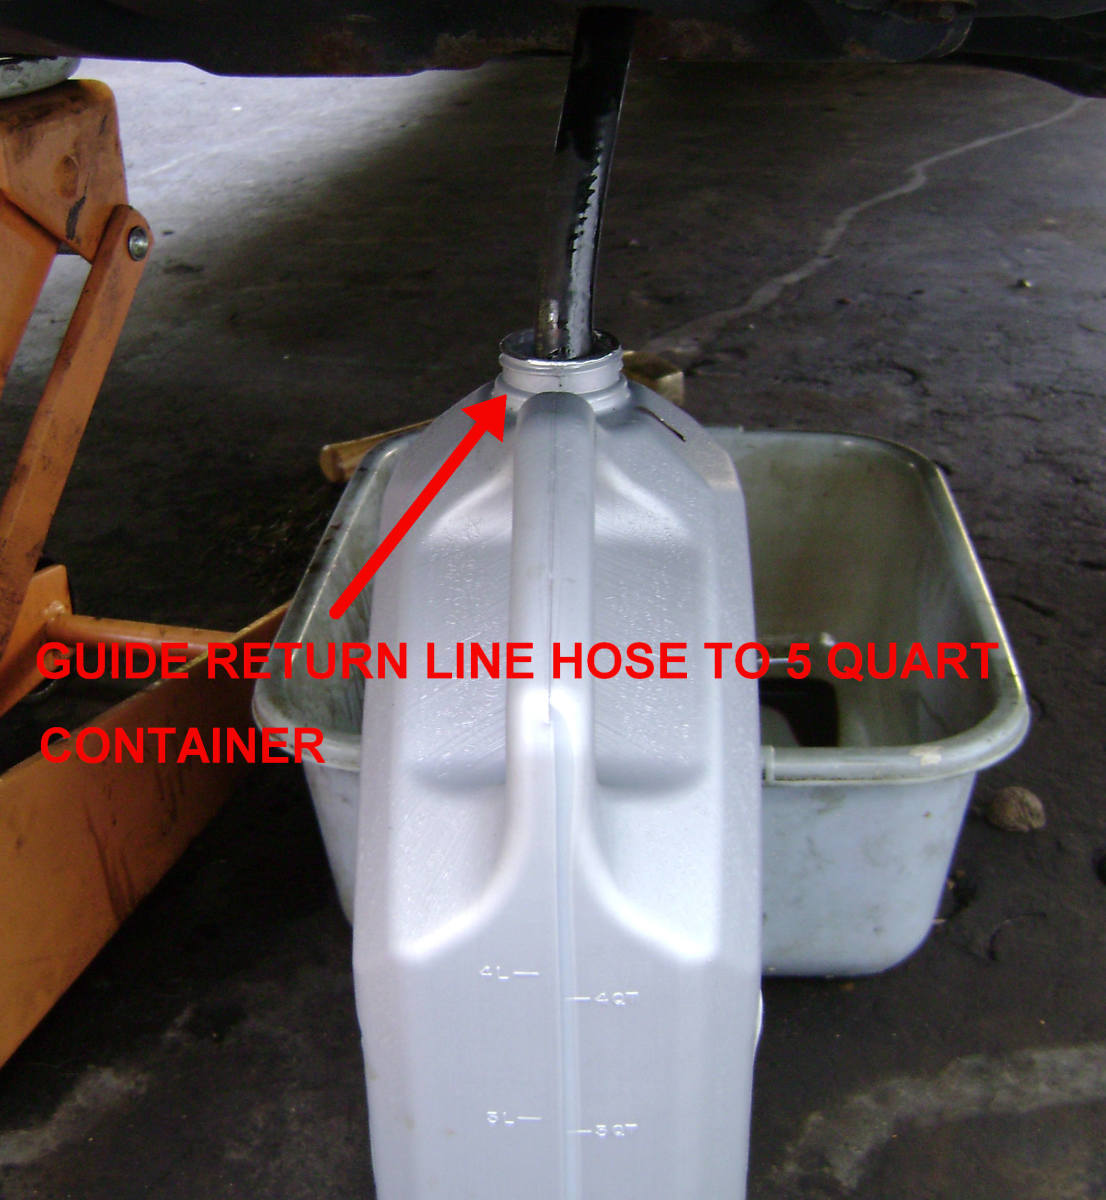 Put the end of the hose into an empty container.